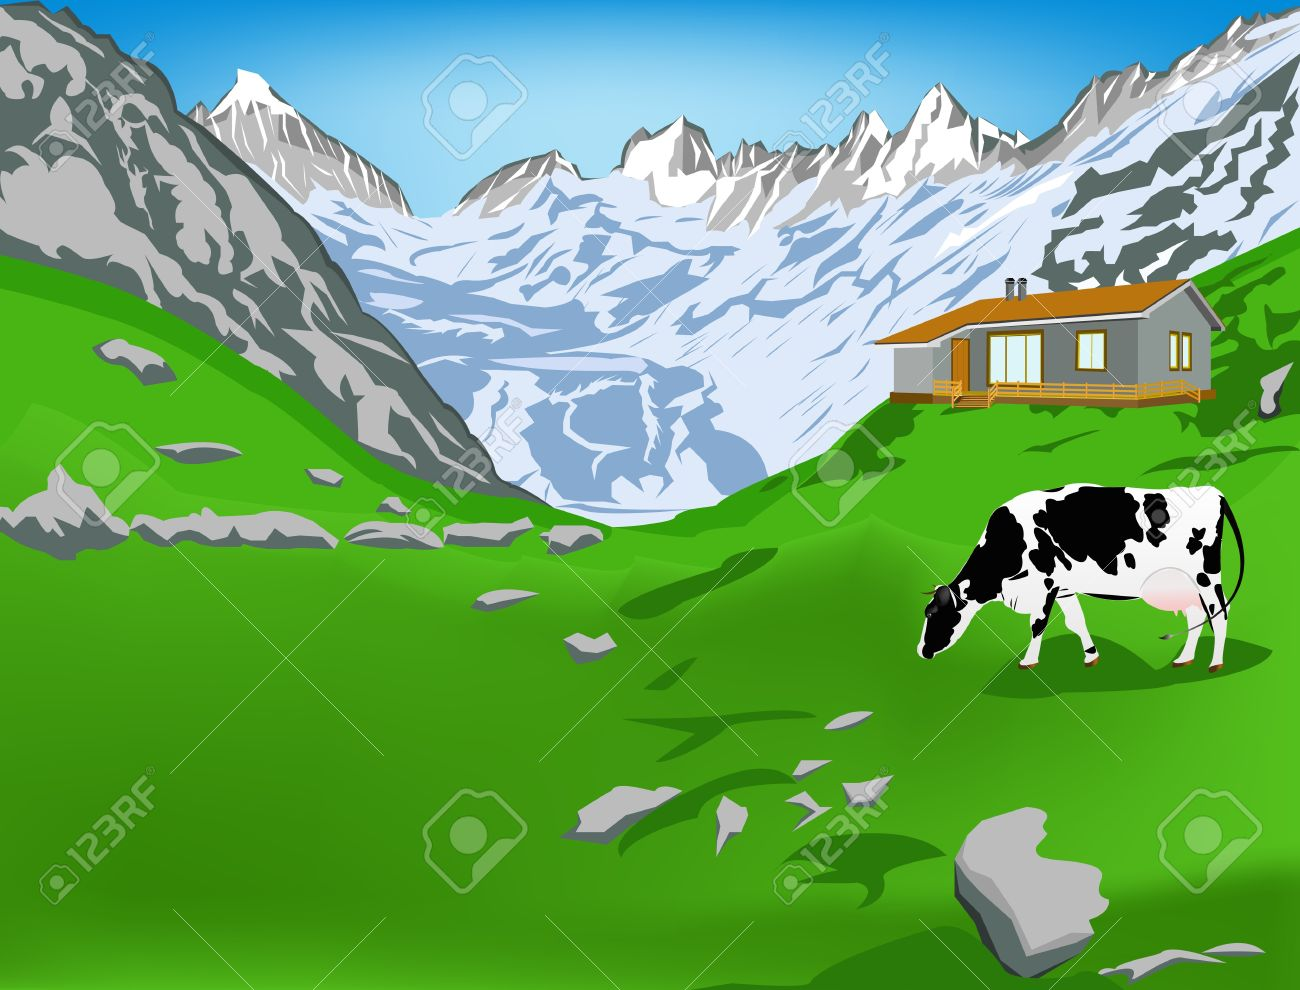 Bernese Alps clipart #17, Download drawings